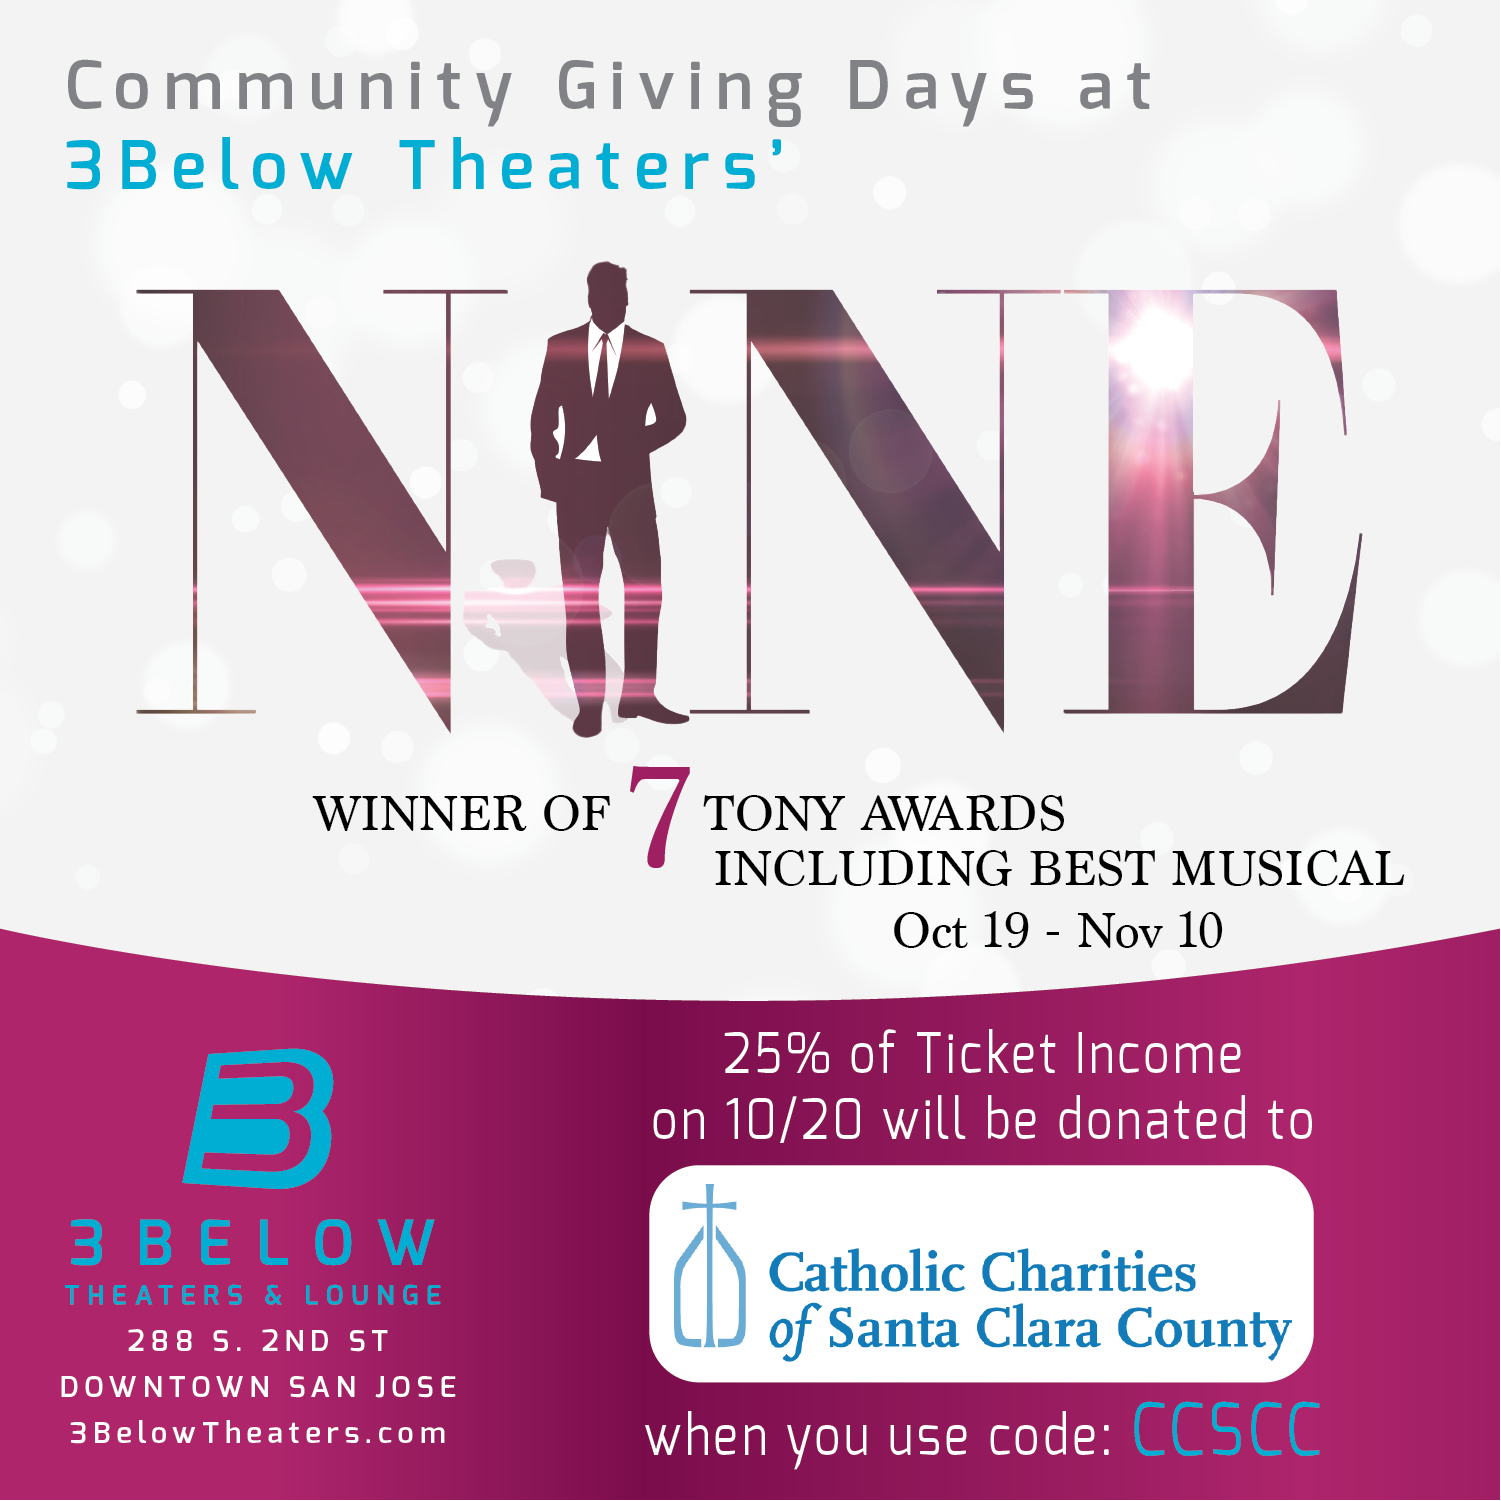 ccscc community giving days web asset.png